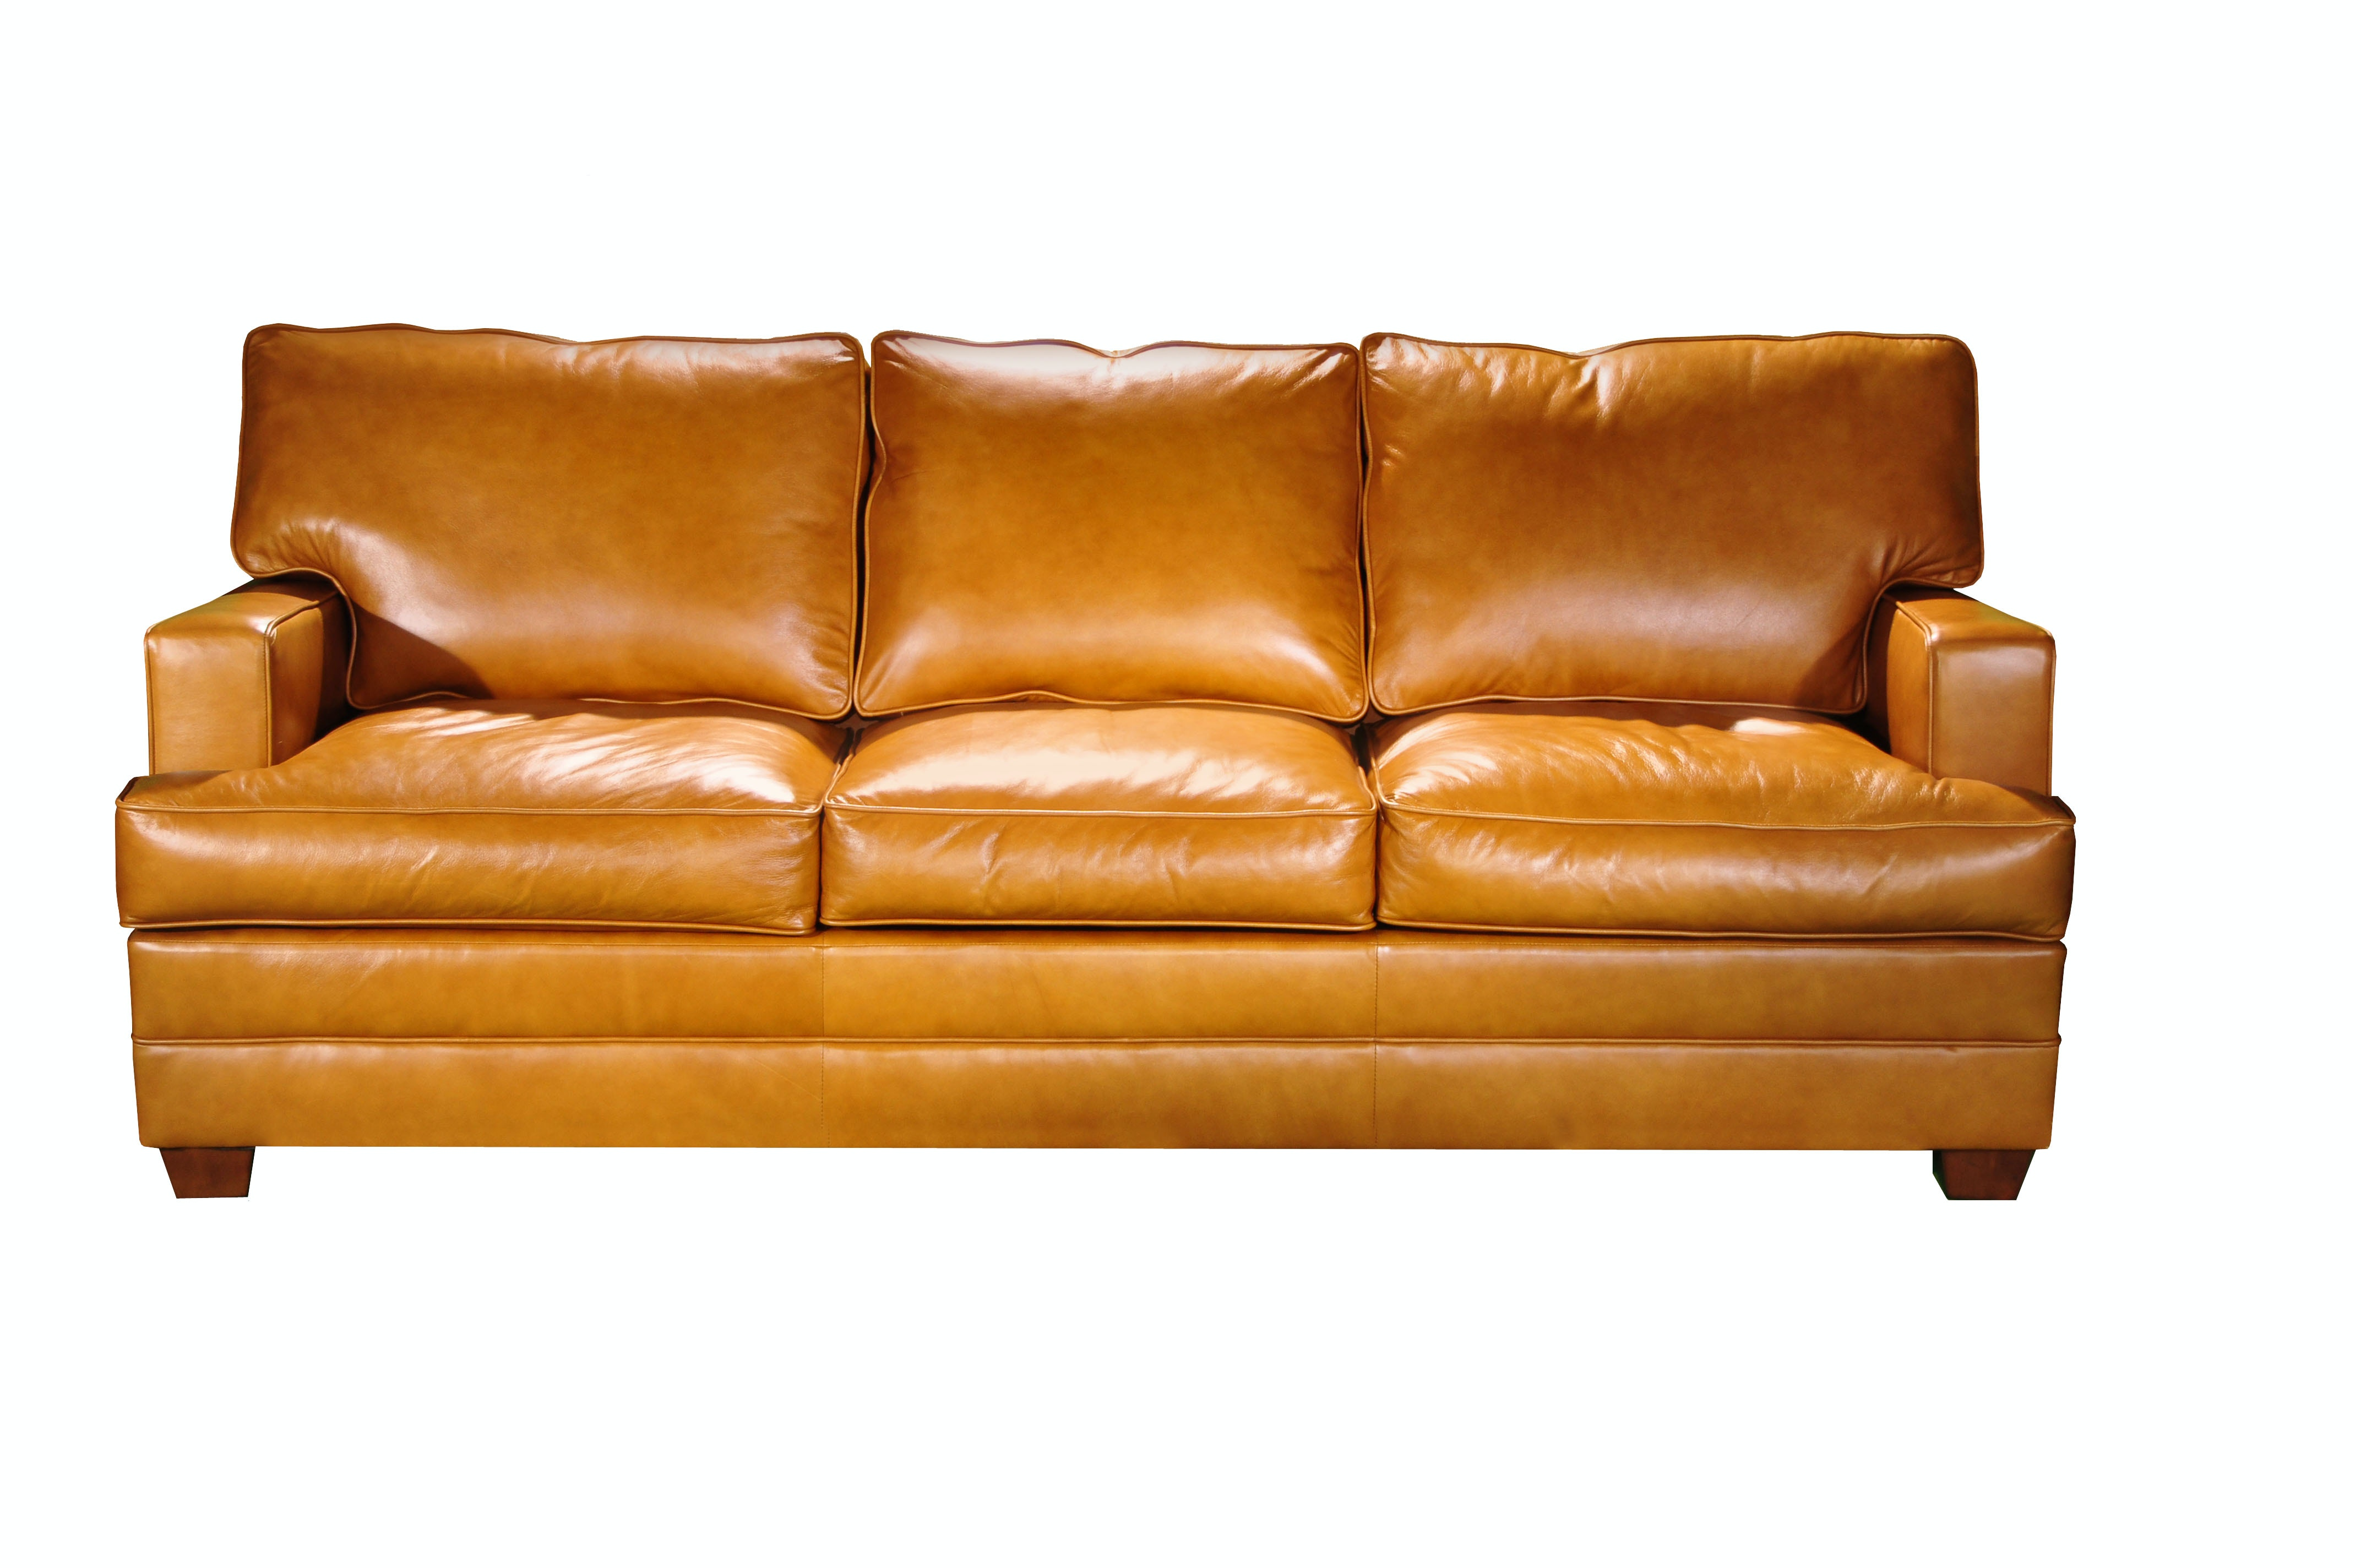 Elite Leather Track Arm Leather Sofa In Stock Or Available To Be Custom  Ordered In Hundreds